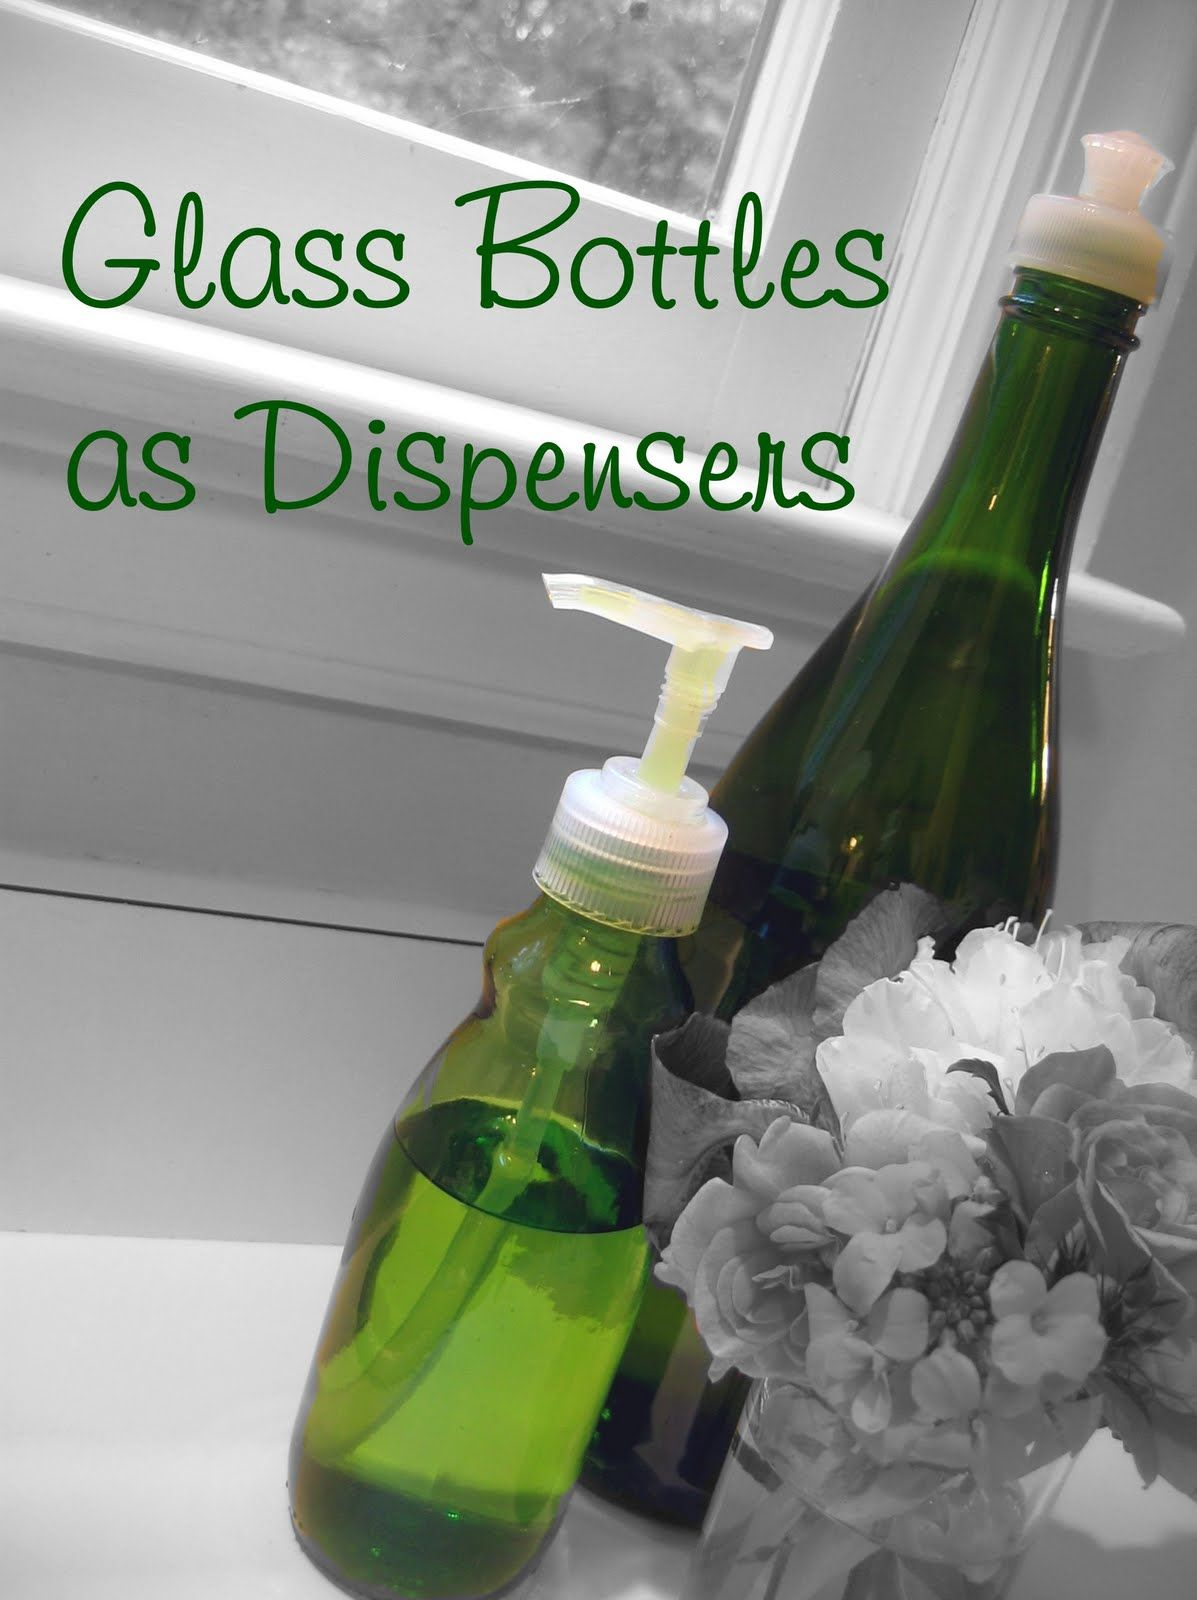 Glass Bottles as Dispensers...Clever!